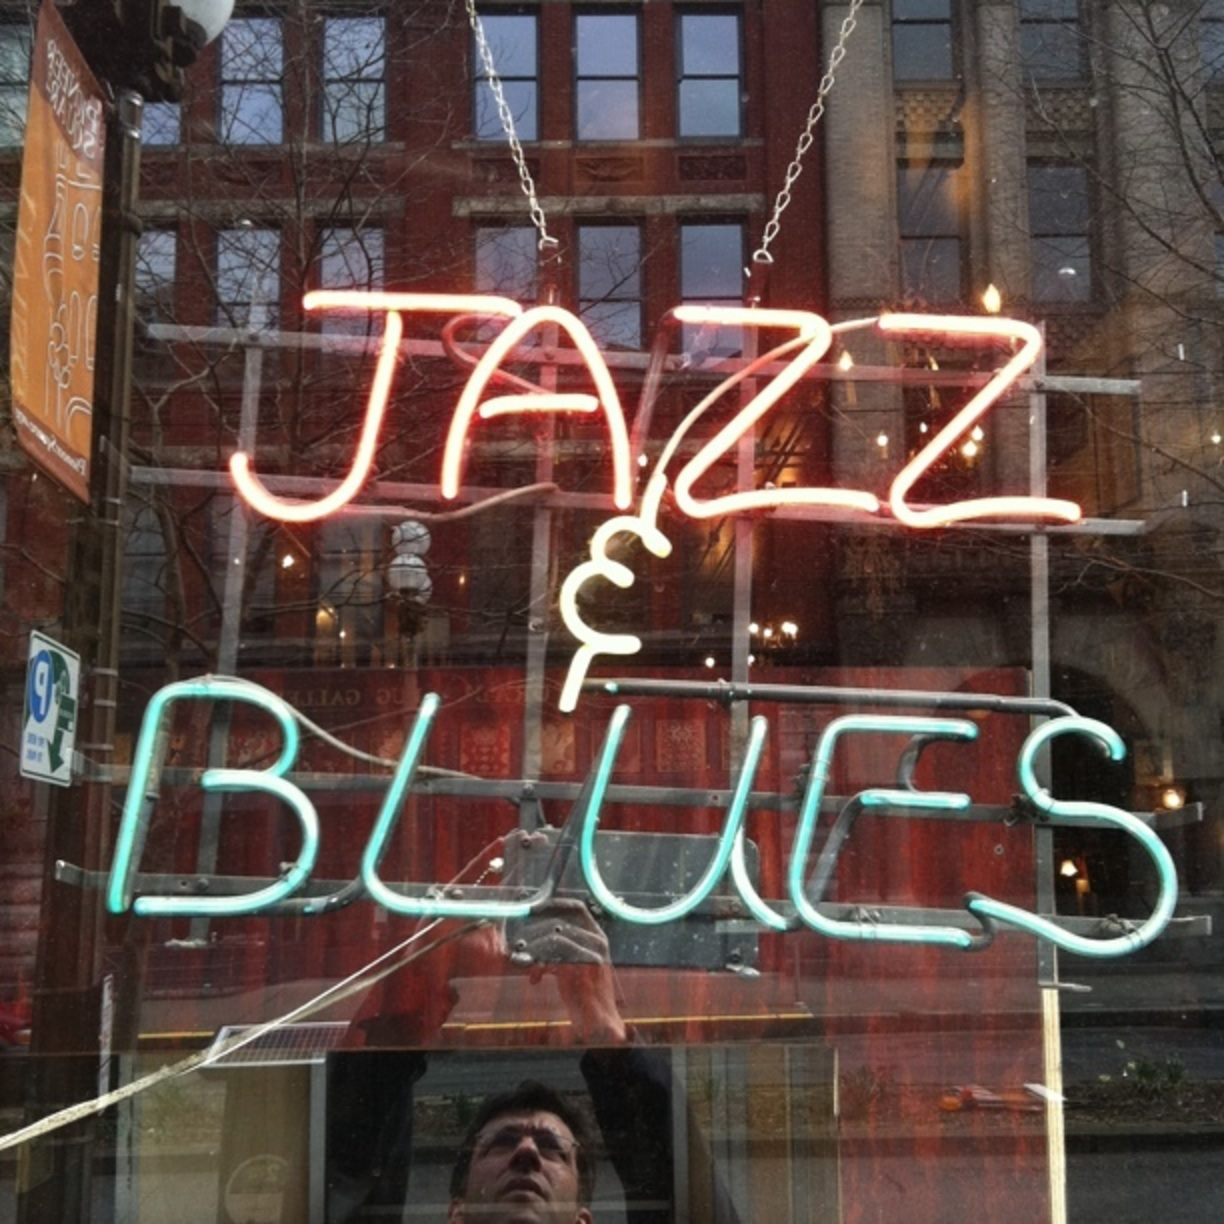 Jazz bars are a New Orleans institution...